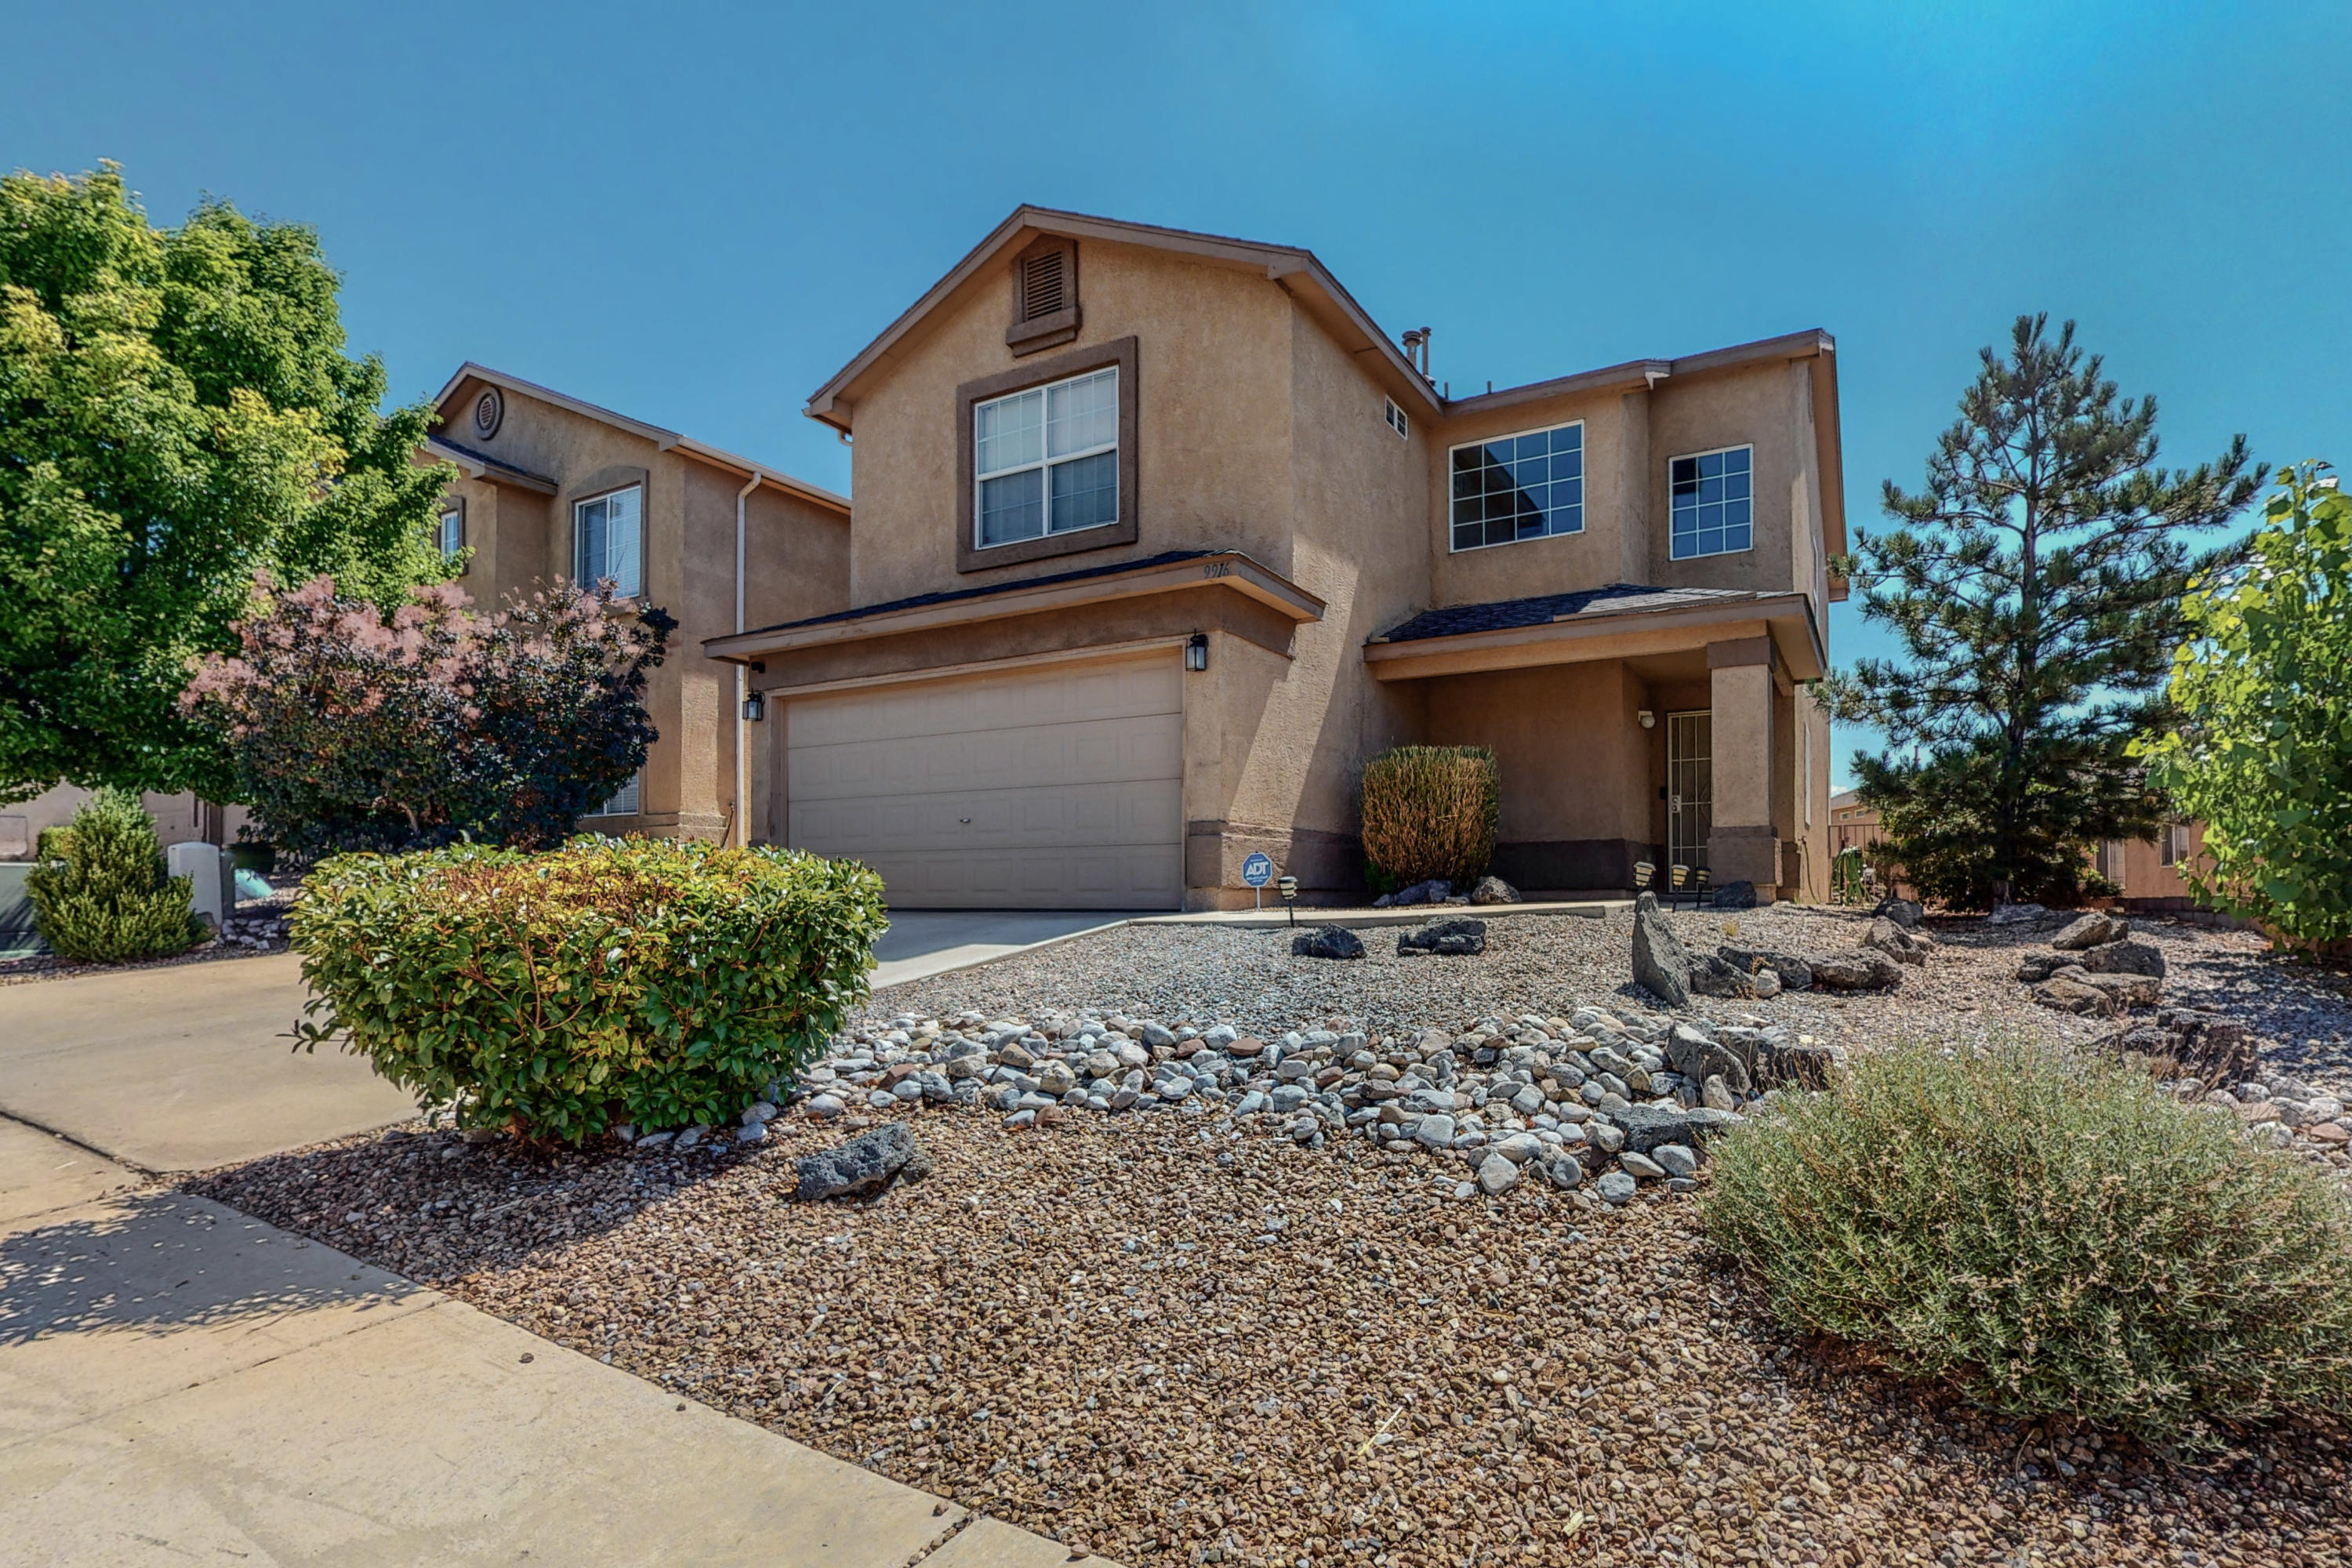 This two story home in Ventana Ranch West subdivision is ready for its new owner. Enjoy the fresh smell of new carpet and new paint through out the house. Chill inside with refrigerated air during those hot summer days.  Walk into a the spacious living room ready for family gatherings or entertaining guests.  The kitchen is open to a large breakfast nook that leads out to the covered patio. All three bedrooms upstairs have spacious walk-in closets to store your prize possessions.  Xeriscaped front and back yards allows you plenty of leisure time to enjoy the walking paths and parks in the neighborhood.